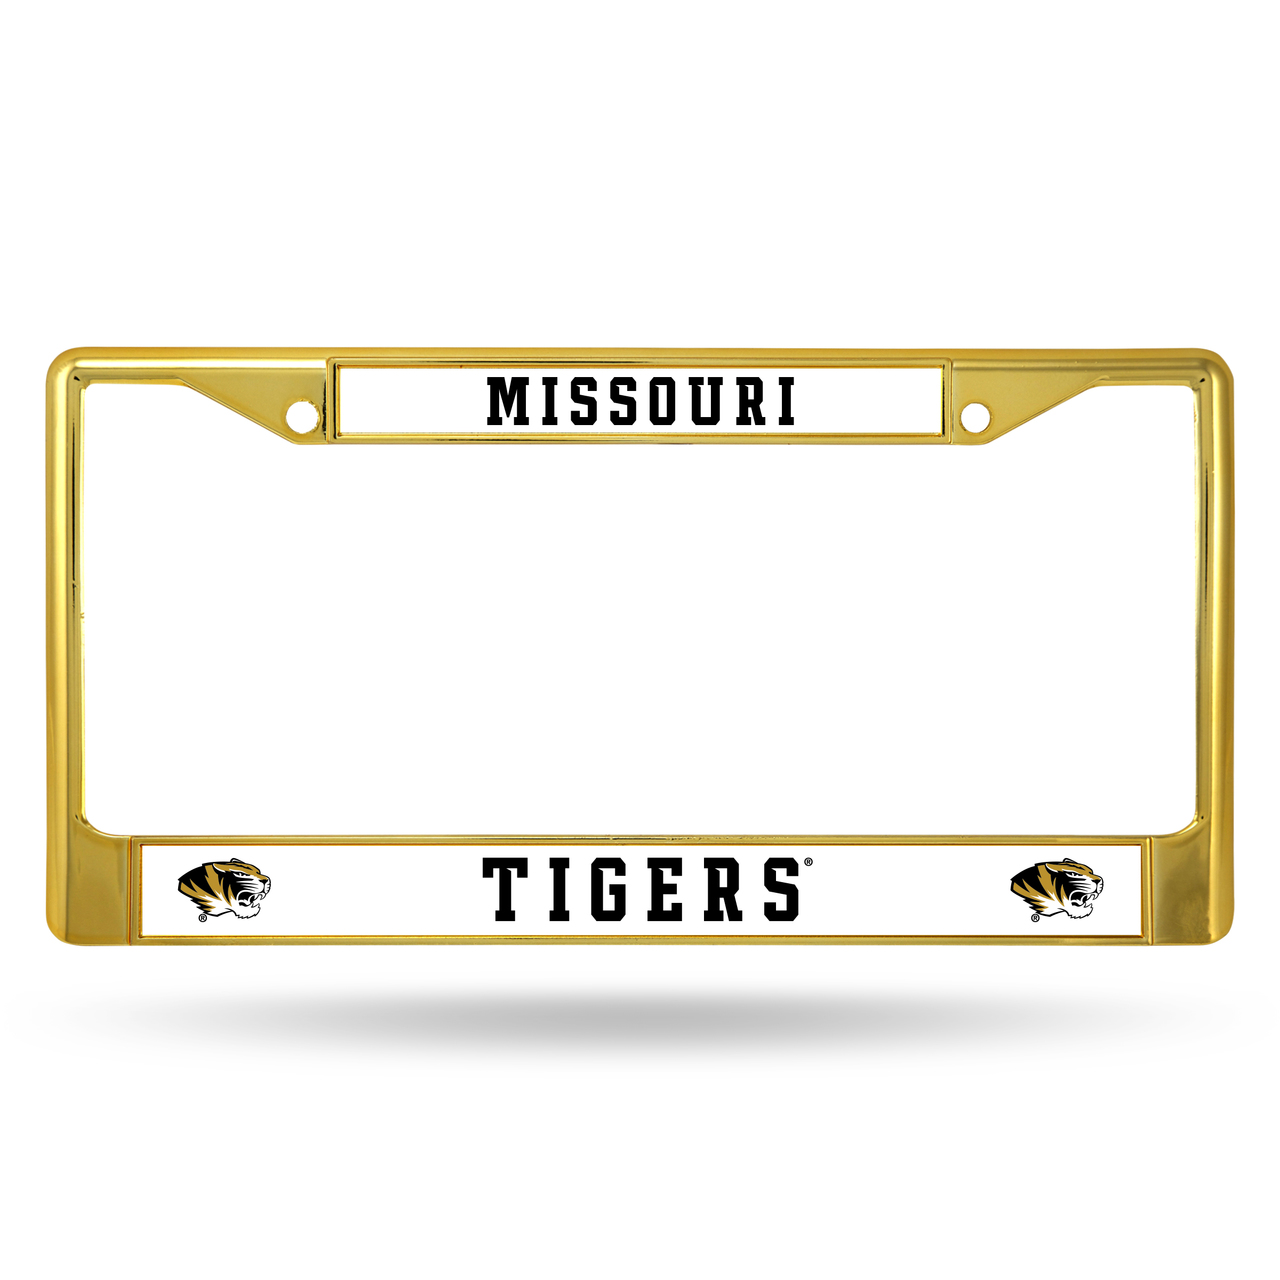 Missouri Tigers GOLD COLORED Chrome Frame - image 1 of 1